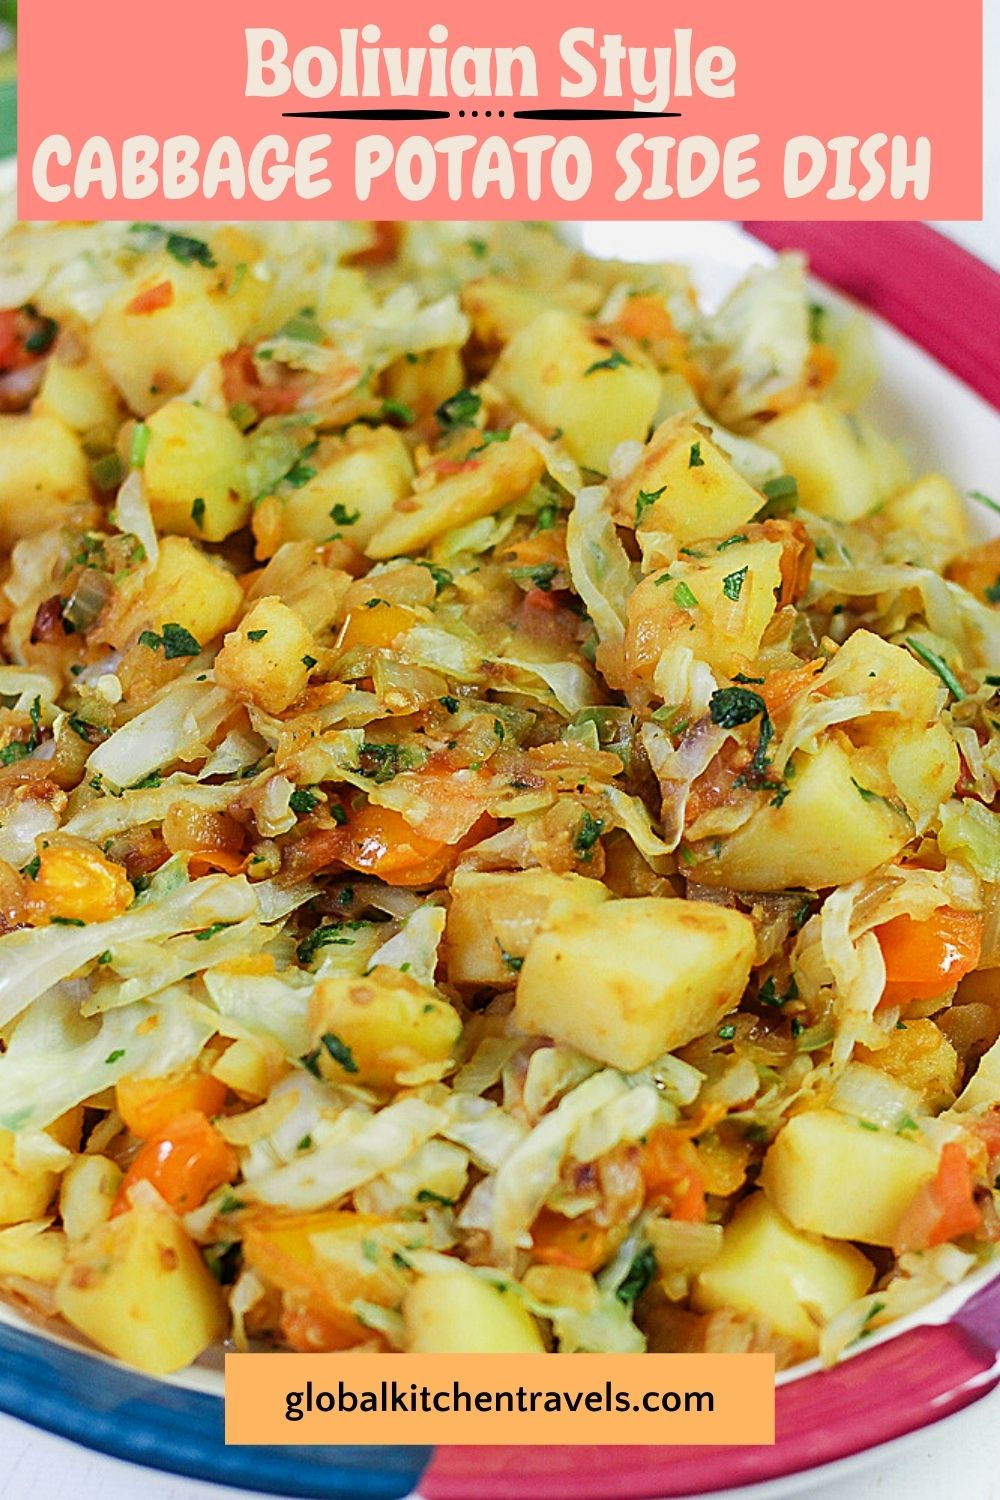 cabbage potato side dish on a platte with text